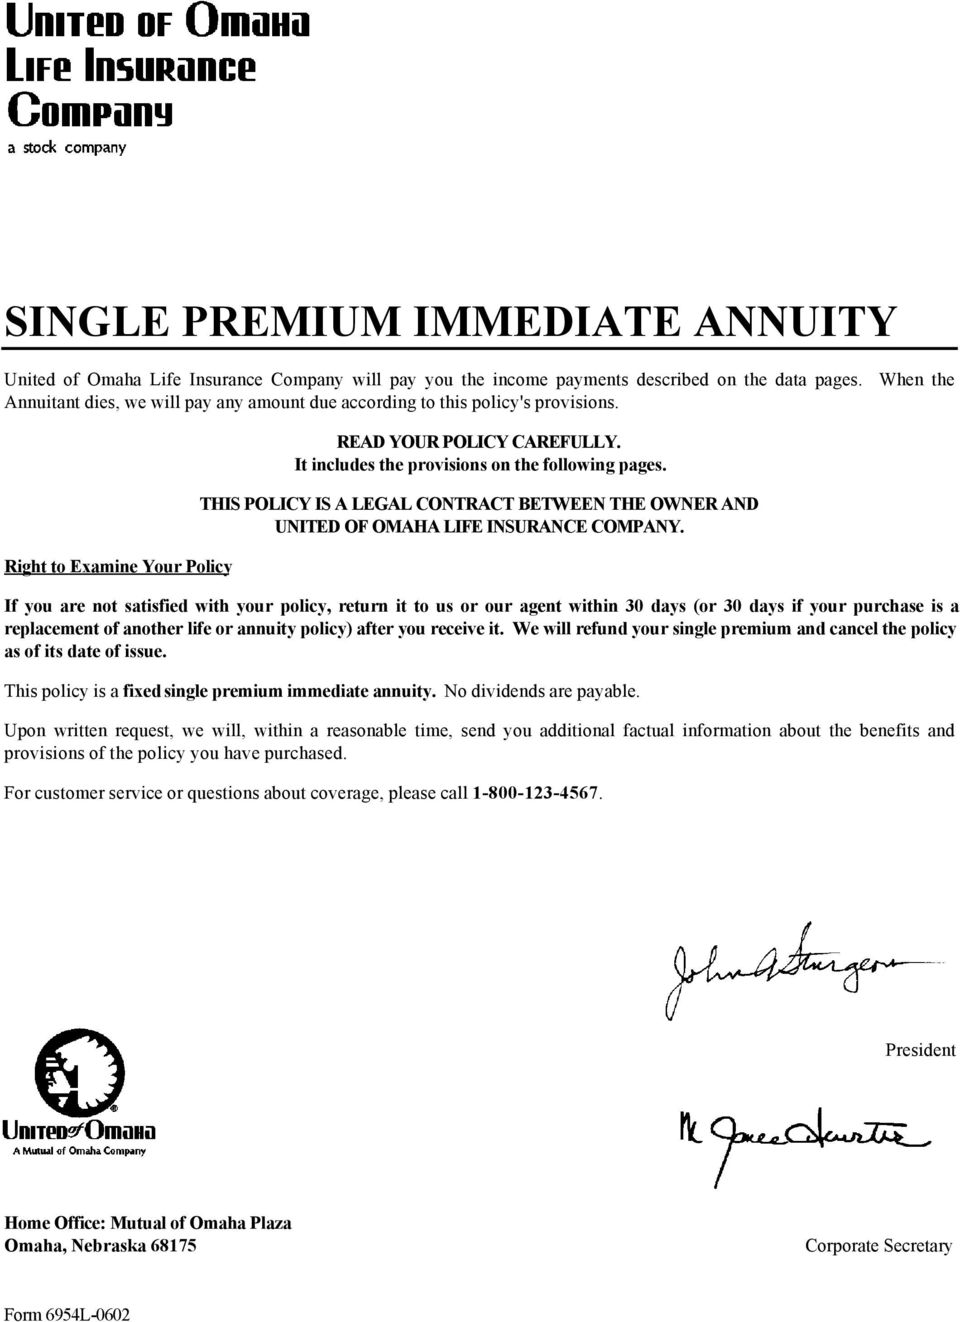 THIS POLICY IS A LEGAL CONTRACT BETWEEN THE OWNER AND UNITED OF OMAHA LIFE INSURANCE COMPANY.